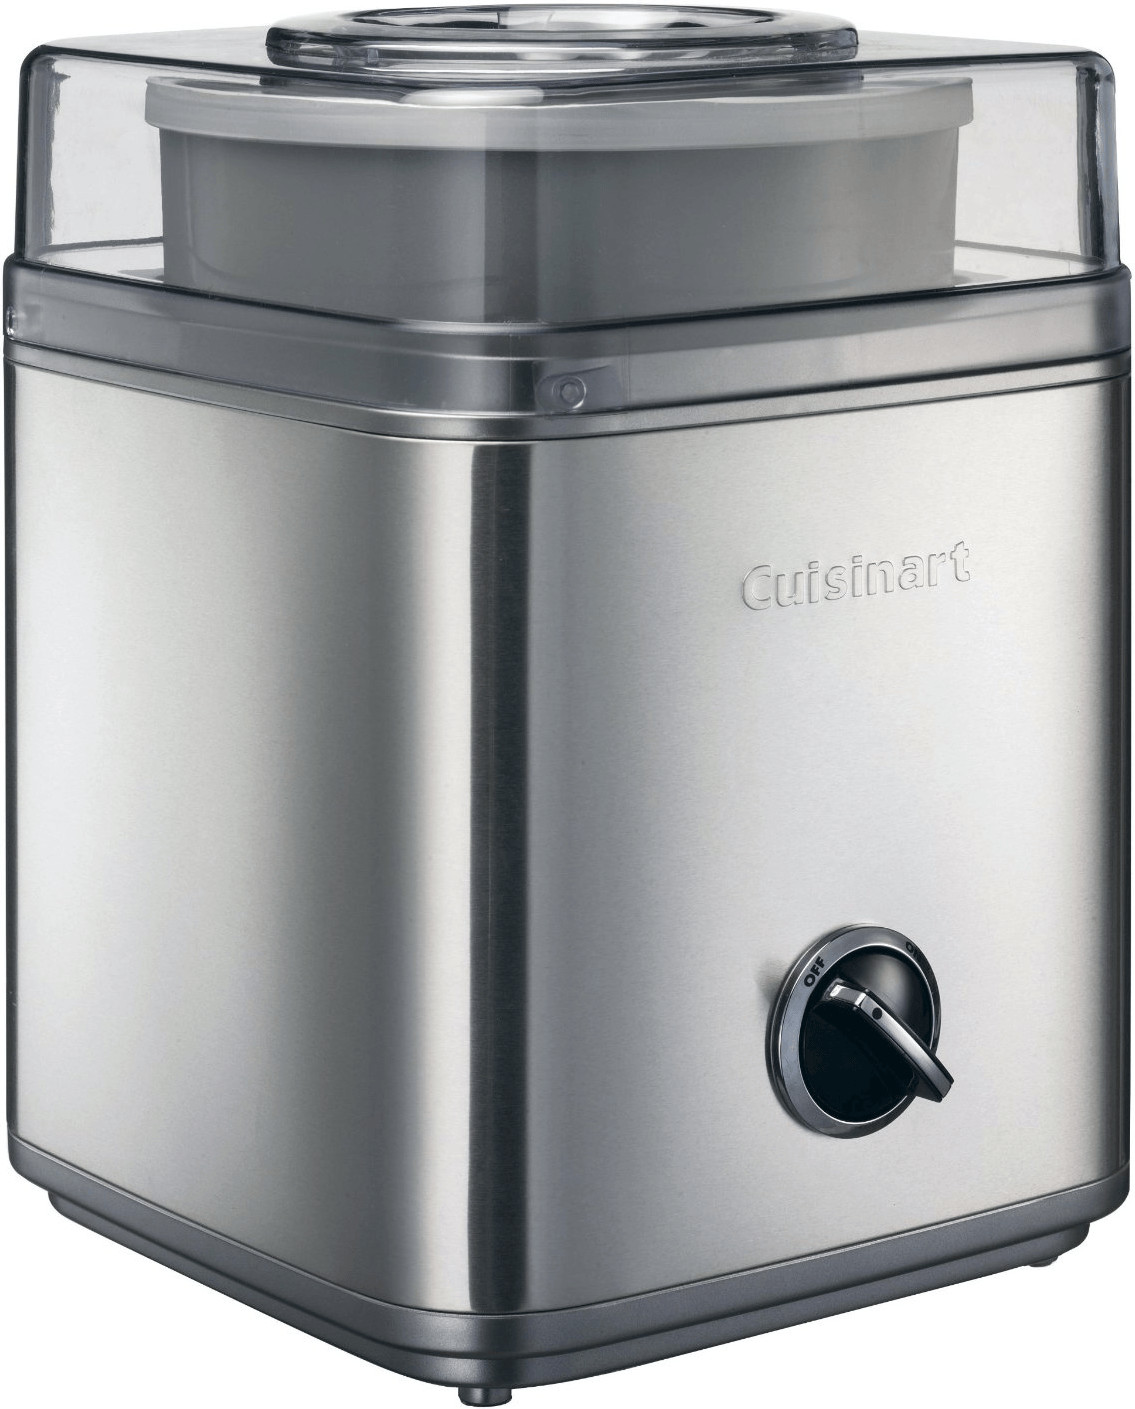 Image of Cuisinart Ice Cream Professional (ICE50BCU)